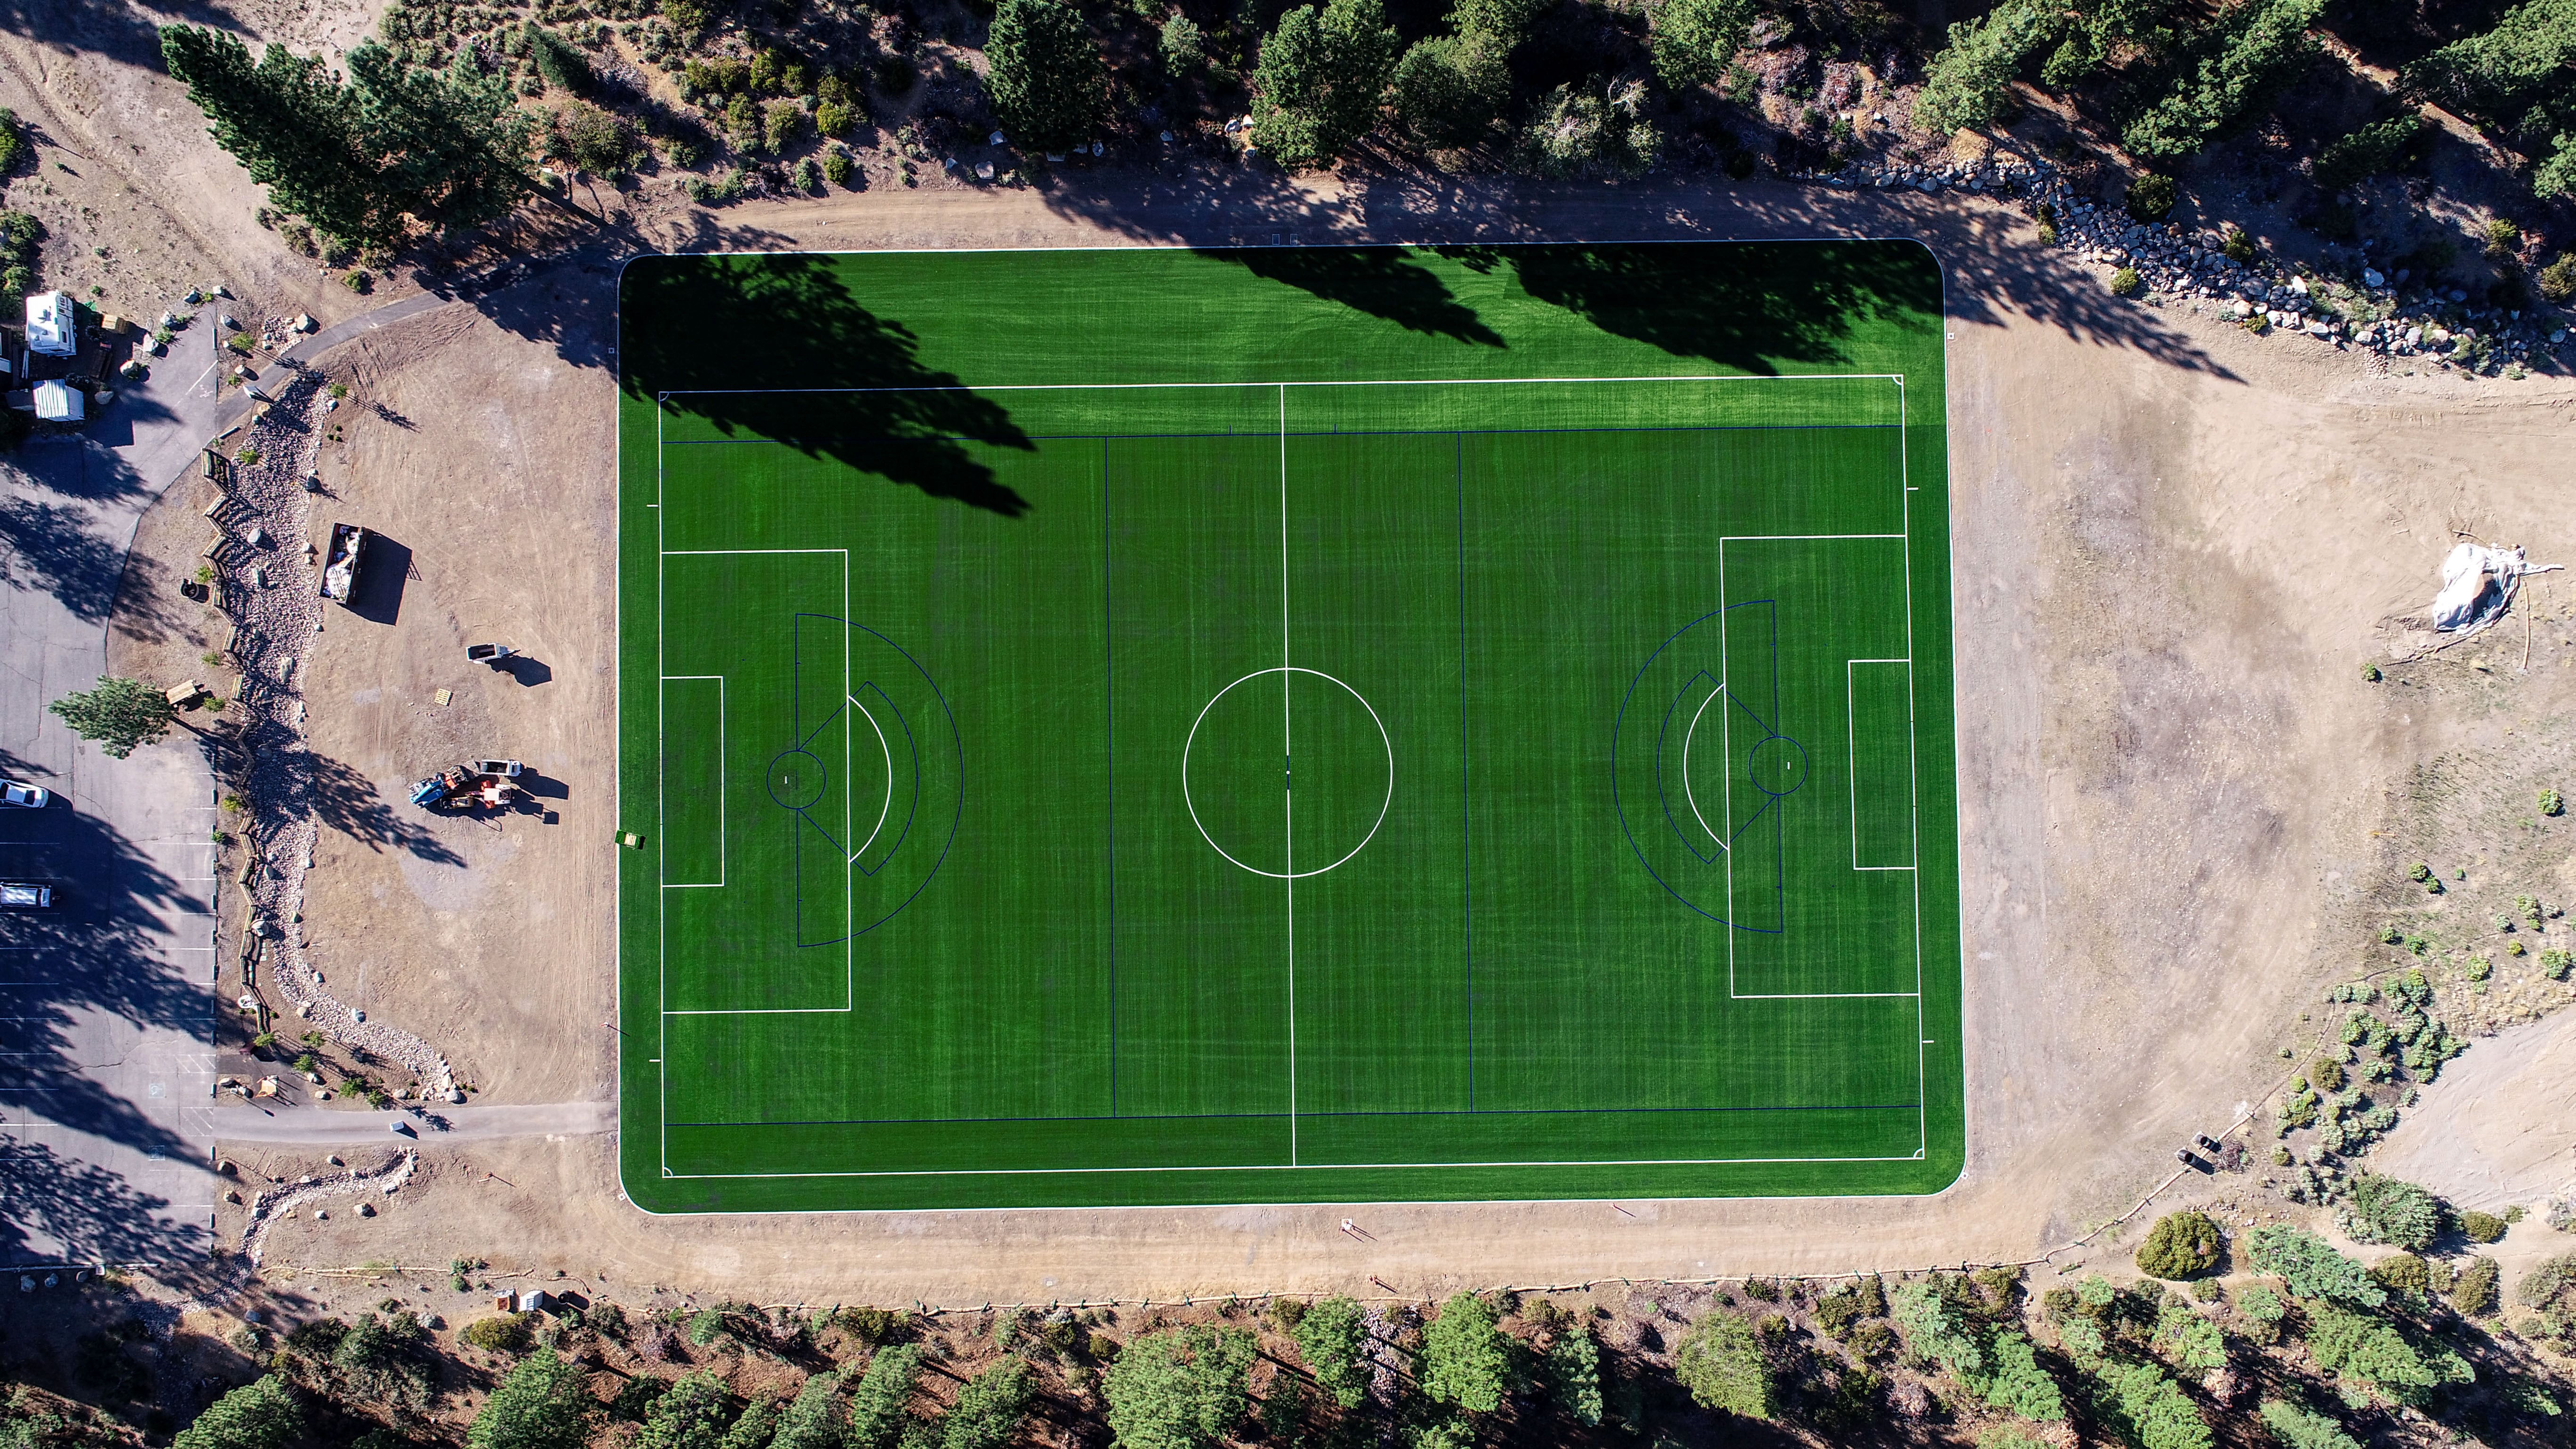 NORTH TAHOE PUBLIC UTILITY DISTRICT SELECTS SHAW SPORTS TURF SYSTEM TO COMPLETE THE  REGION'S SOCCER AND LACROSSE FIELD